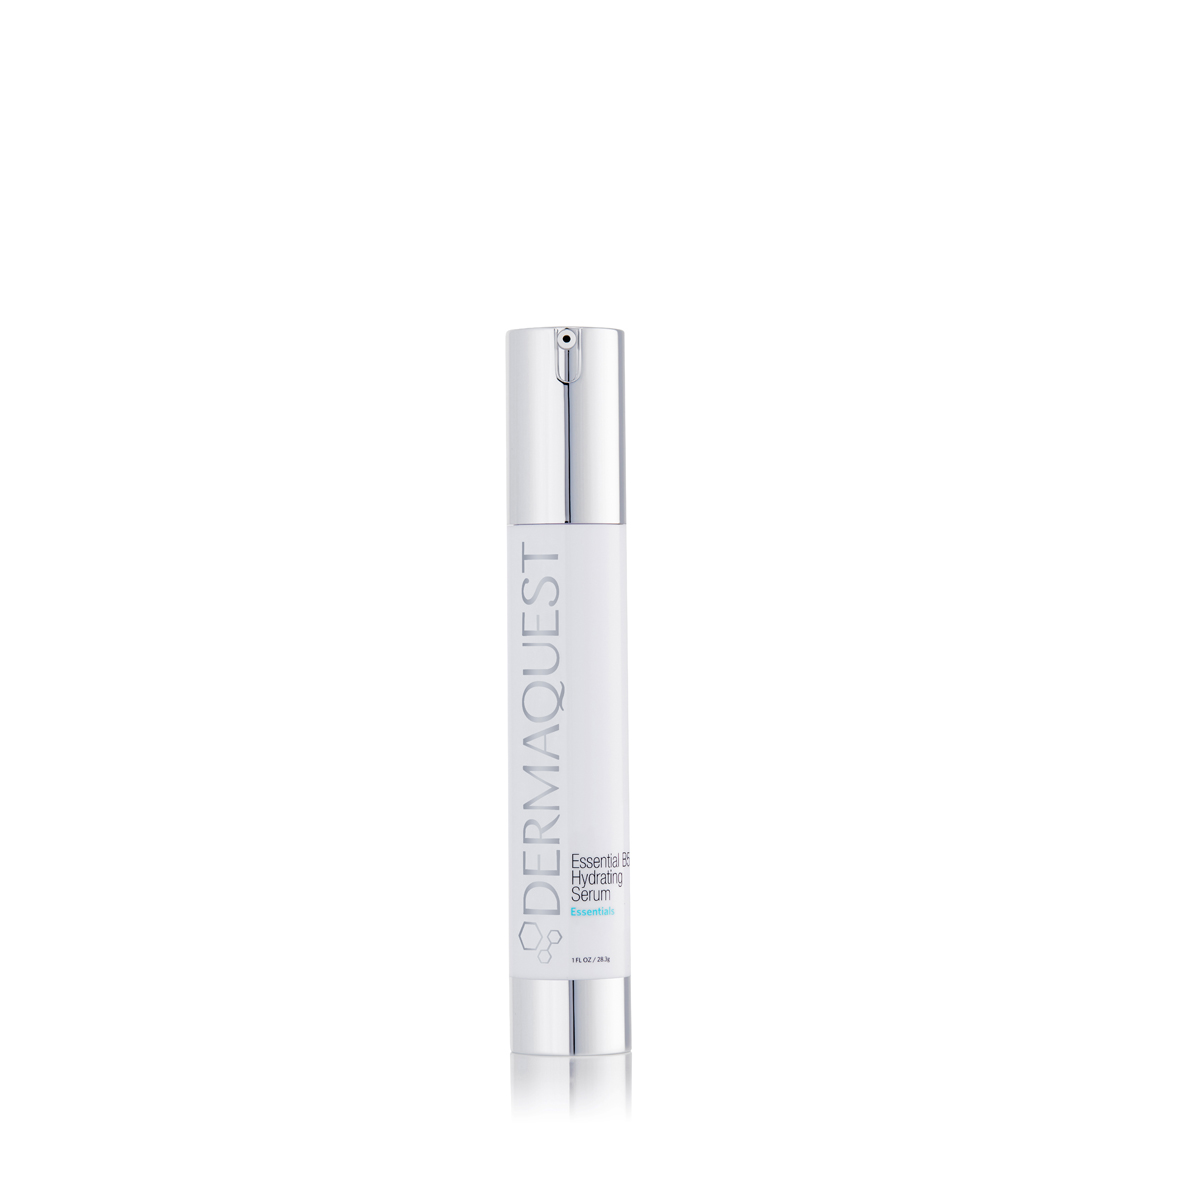 Essential B5 Hydrating Serum- Essentials